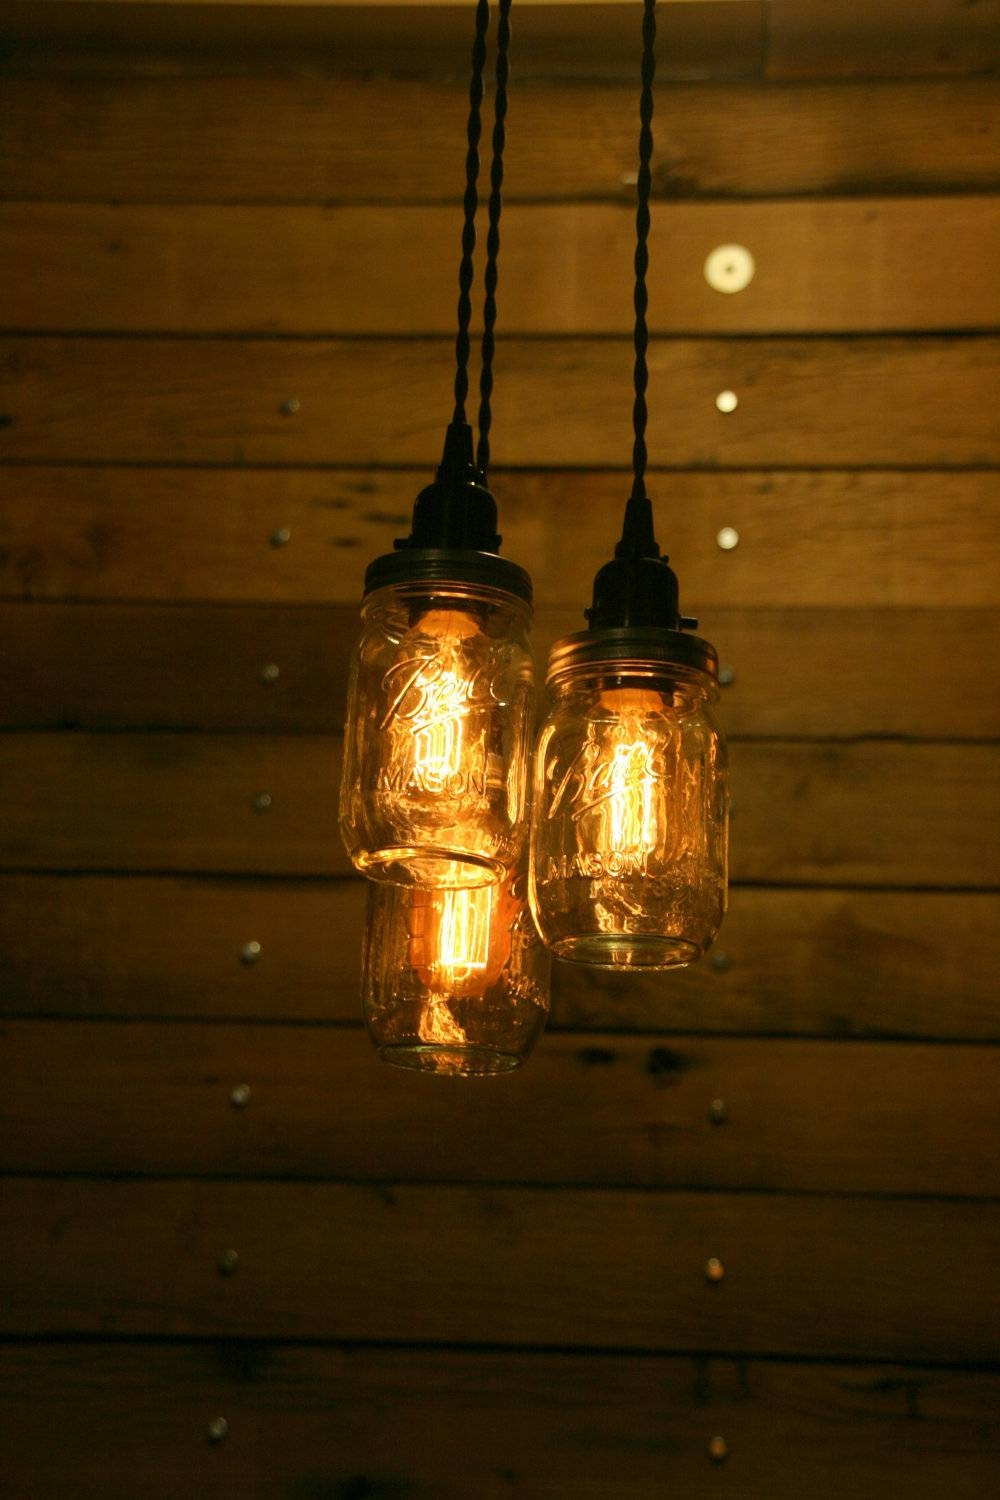 On Sale 3 Pint Jar Pendant Light Mason Jar Chandelier Light Intended For Mason Jar Pendant Lights For Sale (View 5 of 15)